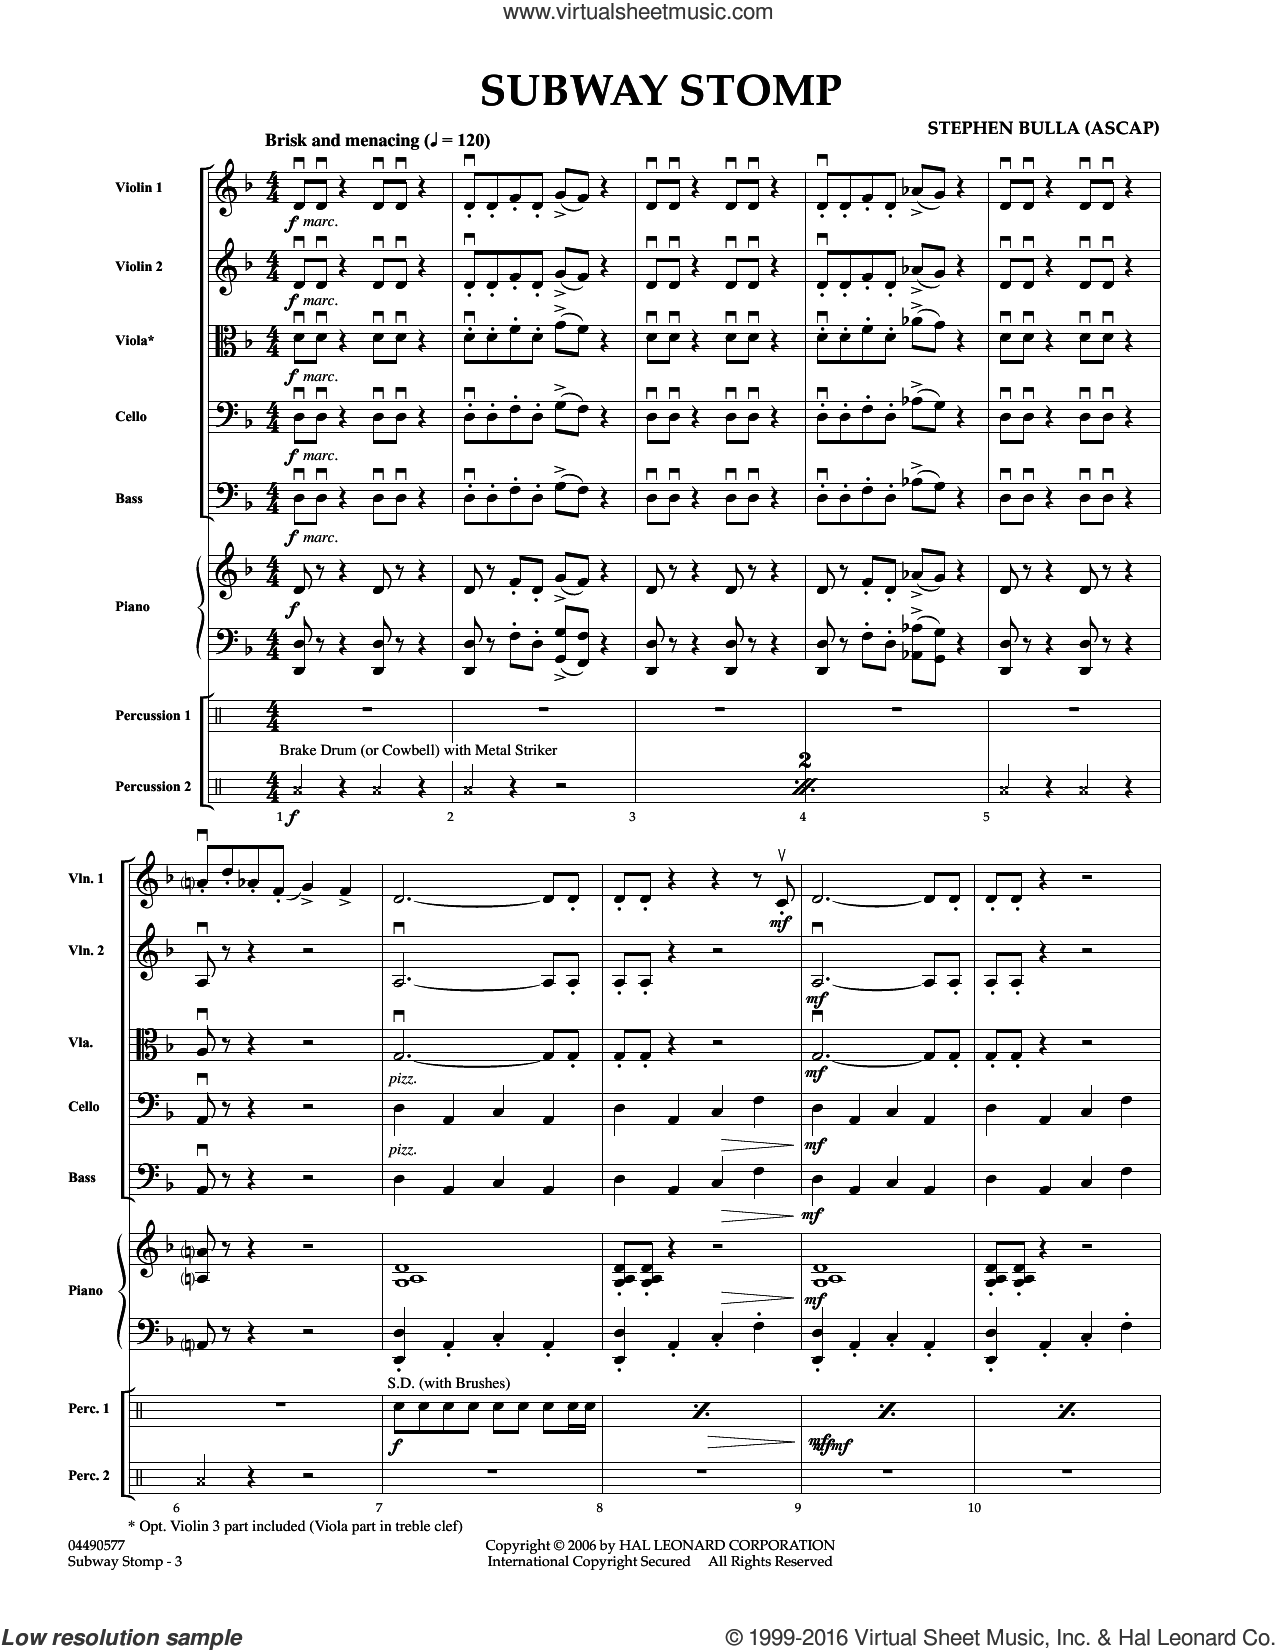 Subway Stomp (COMPLETE) sheet music for orchestra by Stephen Bulla. Score Image Preview.